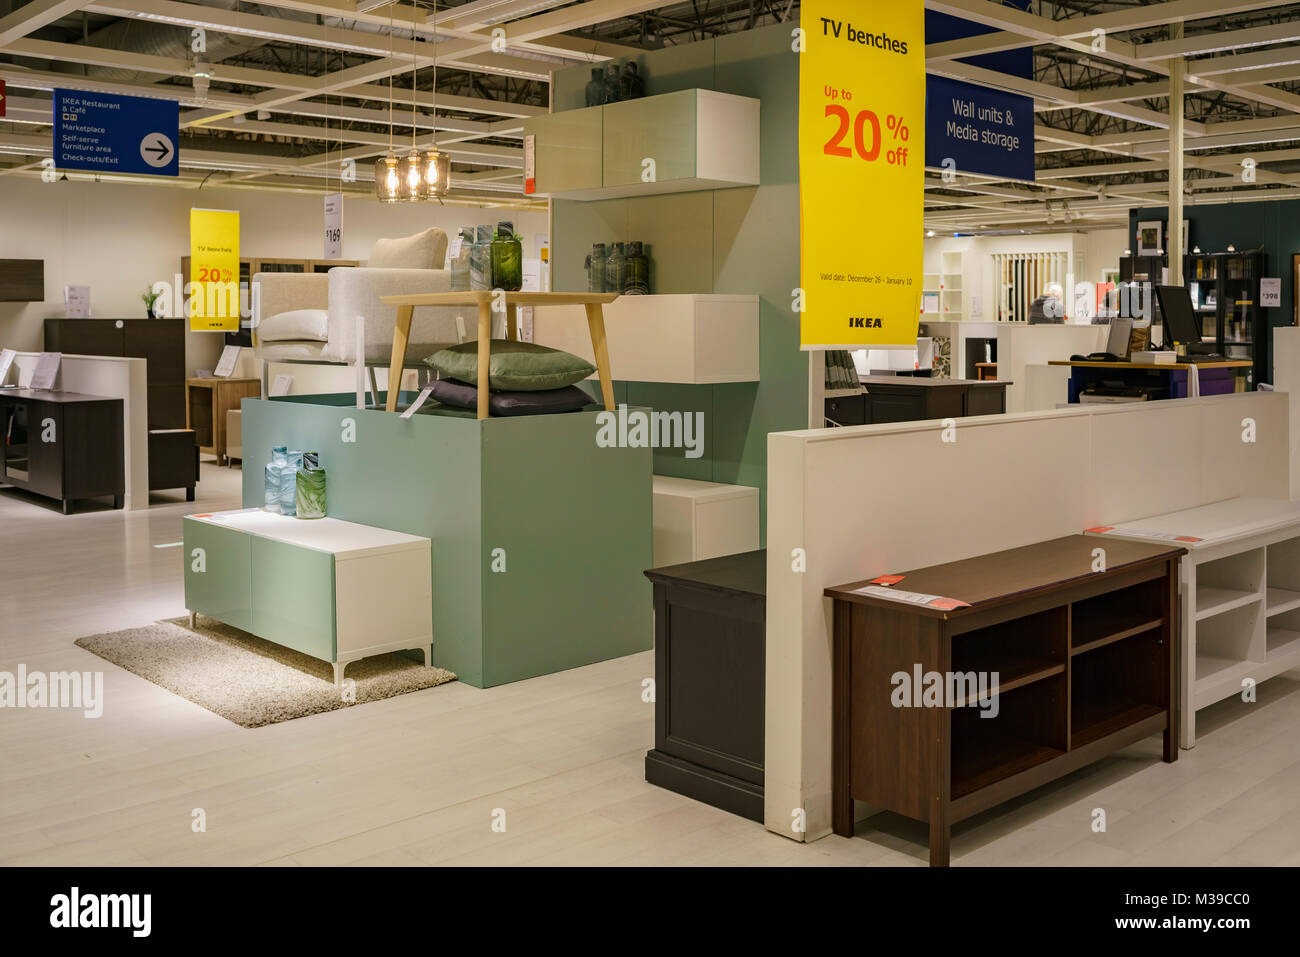 Marvelous Los Angeles, DEC 28: Interior View Of The Famous IKEA Furniture Stores On  DEC 28, 2017 At Los Angeles, California